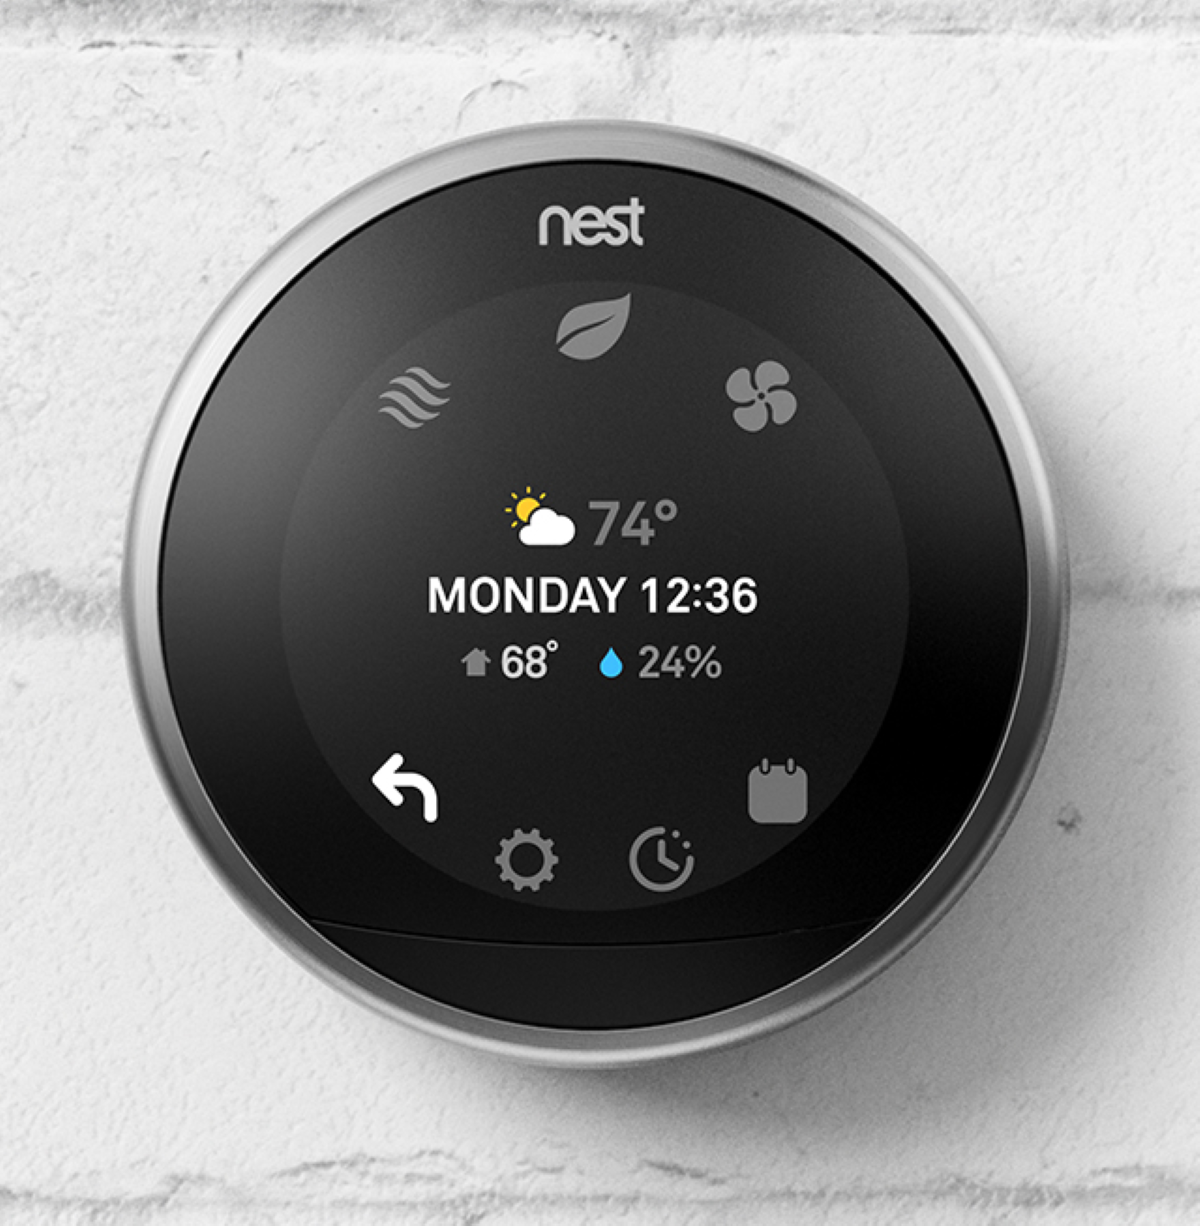 Google Nest Learning Smart Home Thermostat - Farsight Mode